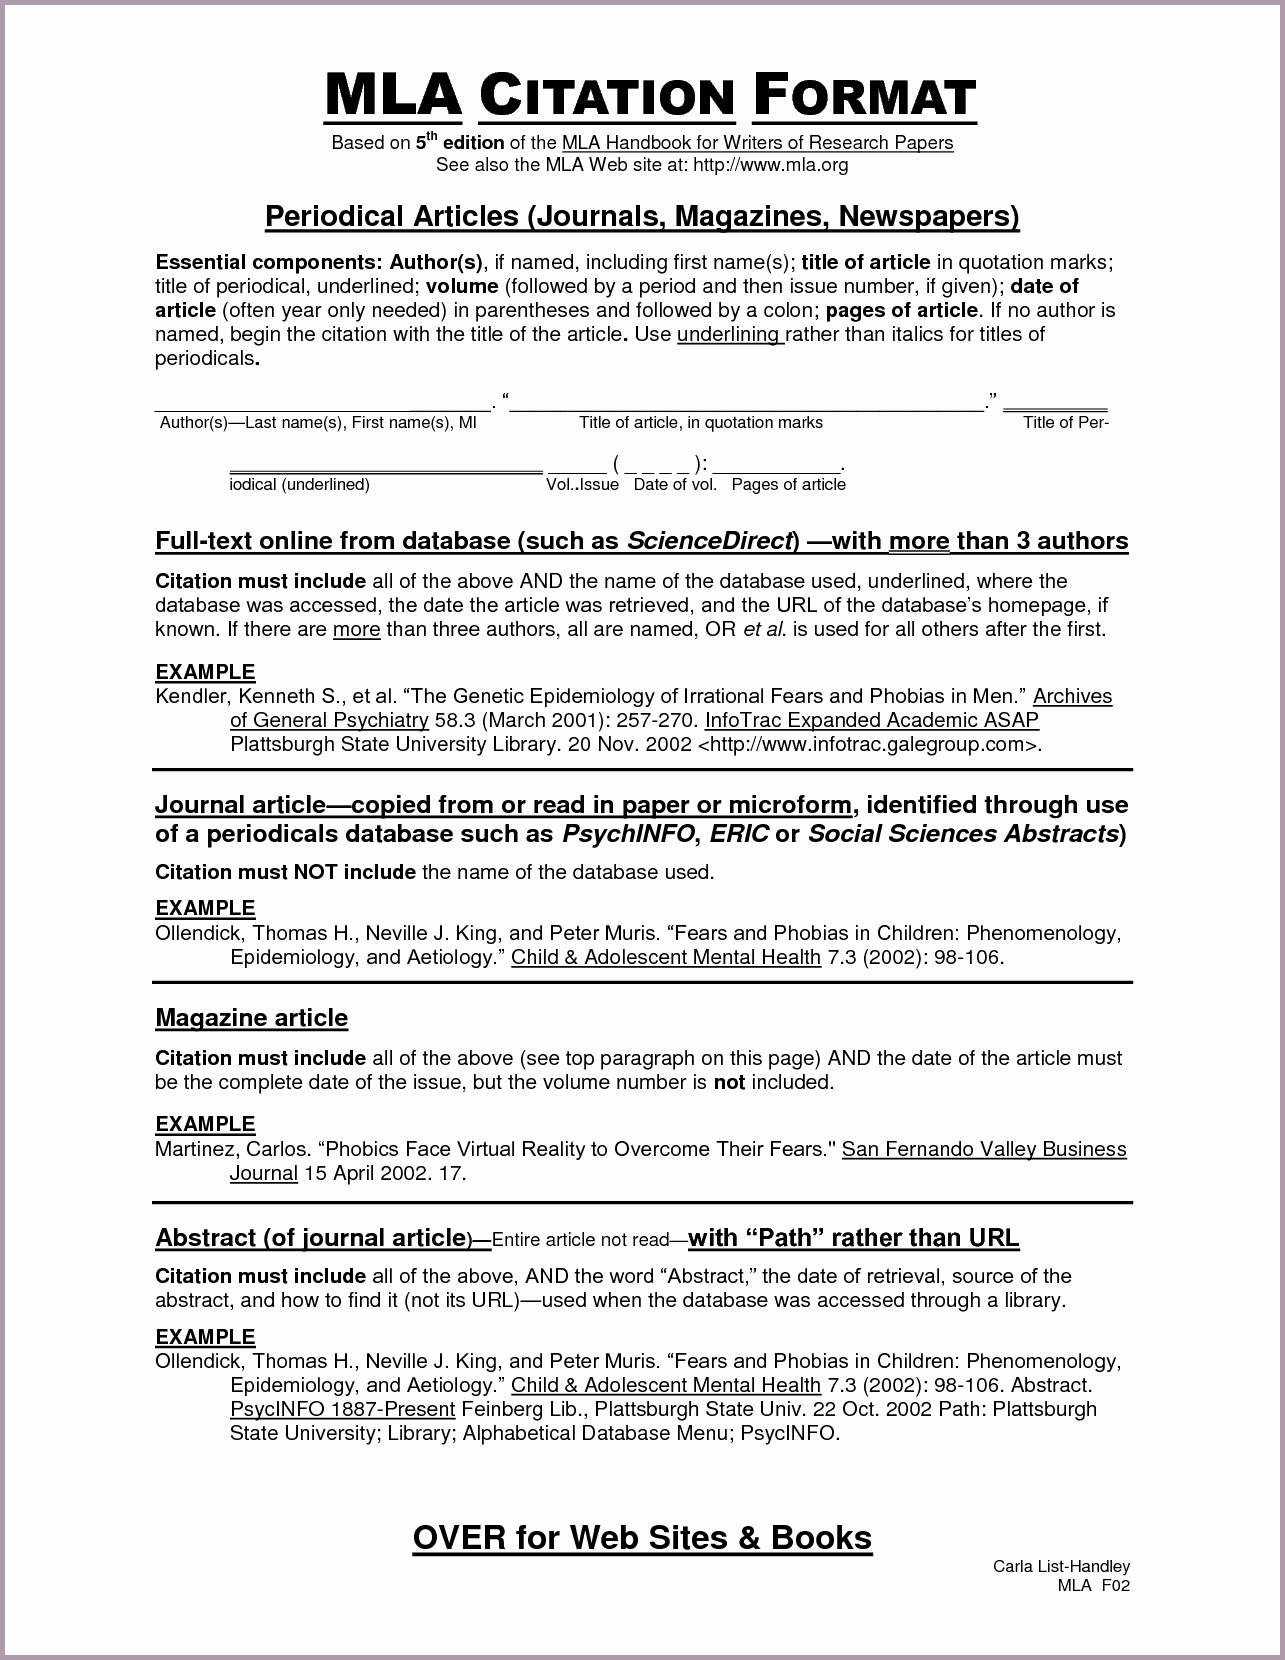 Research Paper In Mla format Best Of How to Cite A Website In Mla format Research Paper